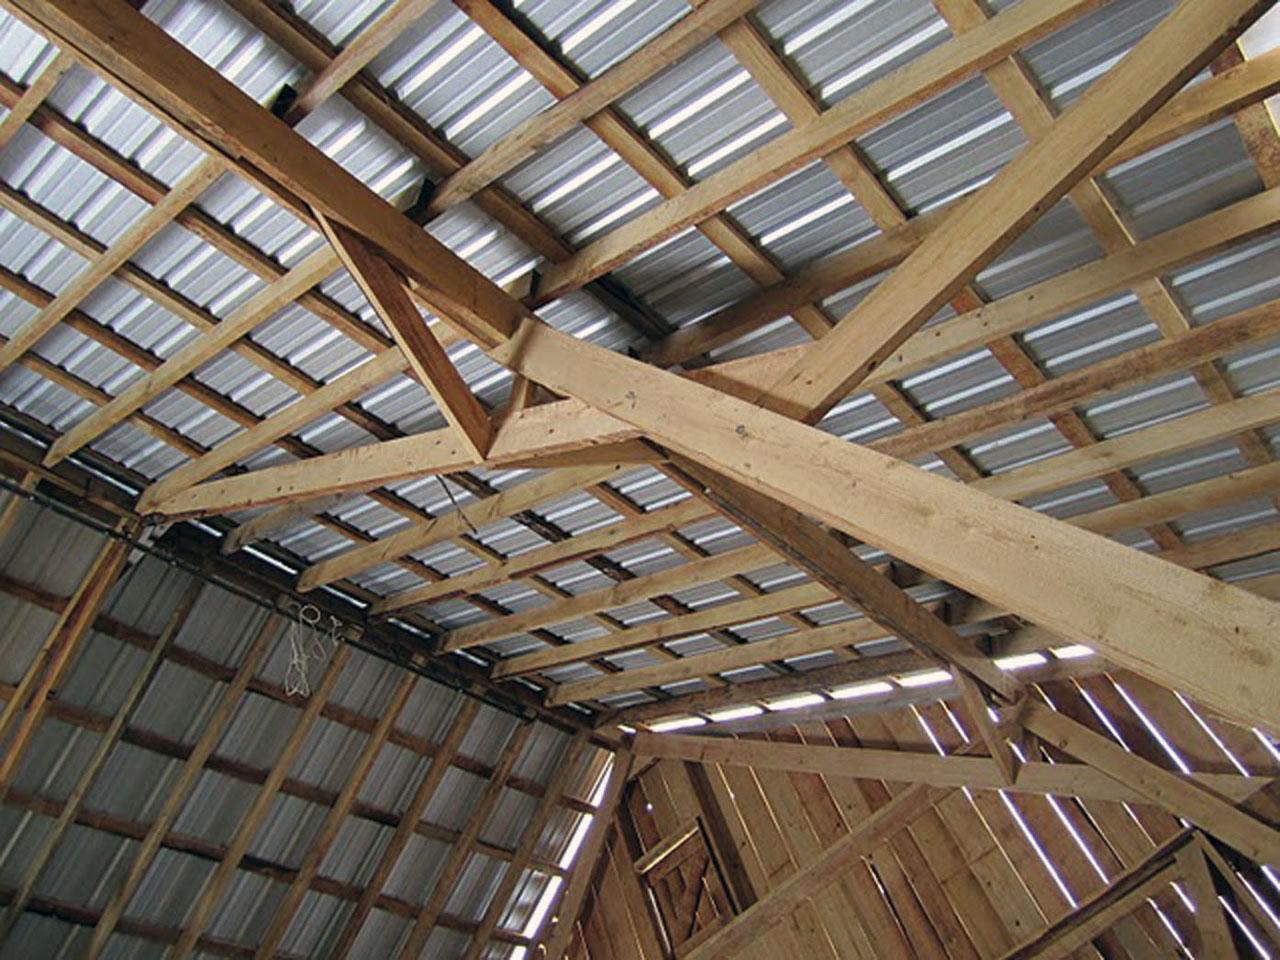 roofing kentwood for needs united as is mississippi well your steel truss coast states gulf barns pole la areas trusses the solution pipe to across louisiana shop in inc products